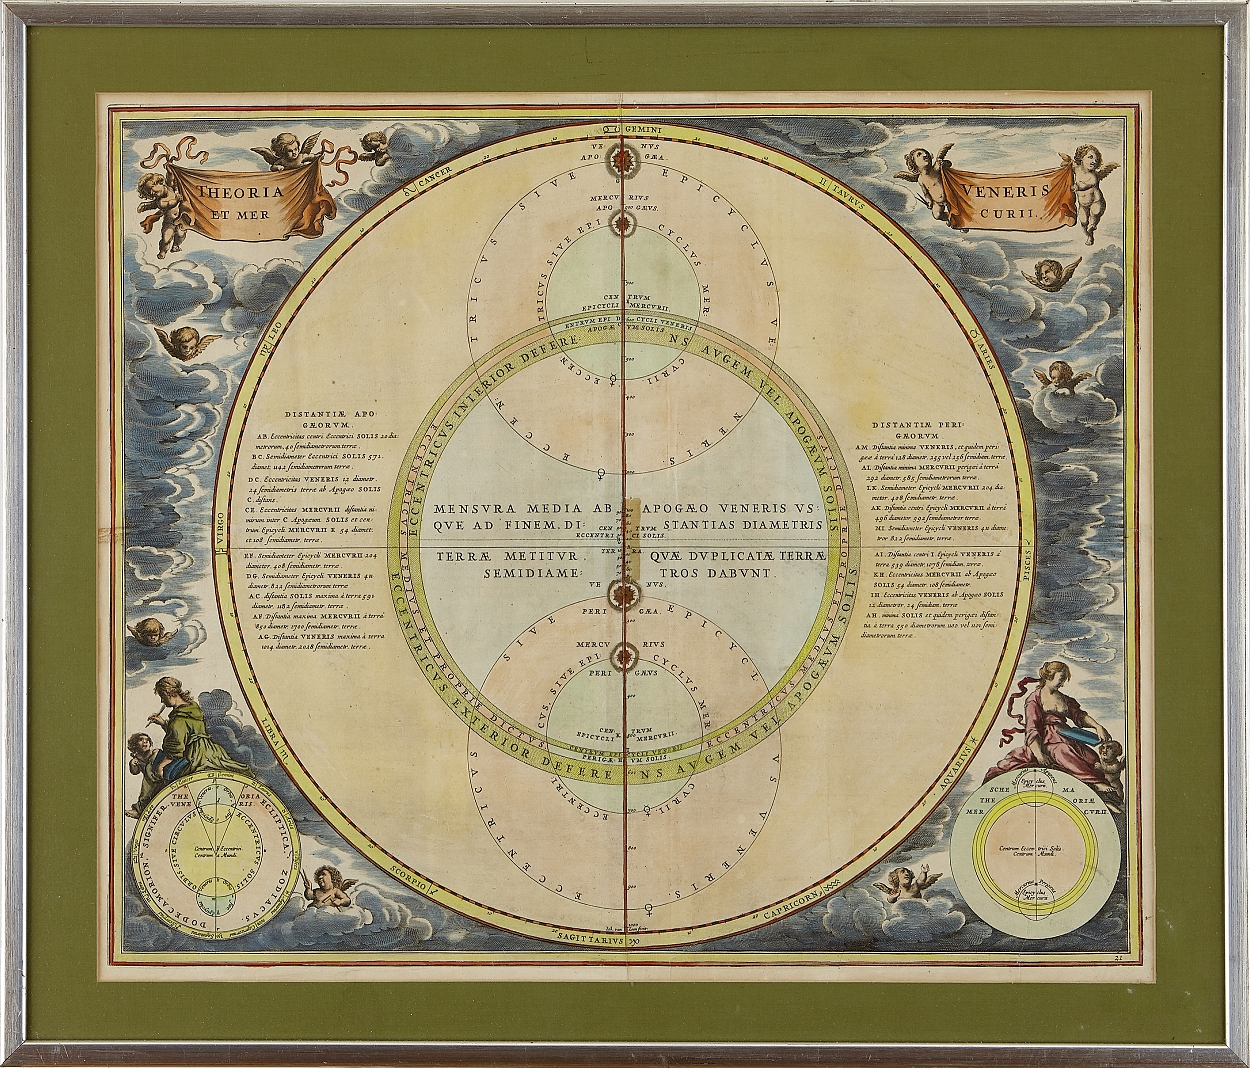 Celestial chart by Cellarius c. 1690